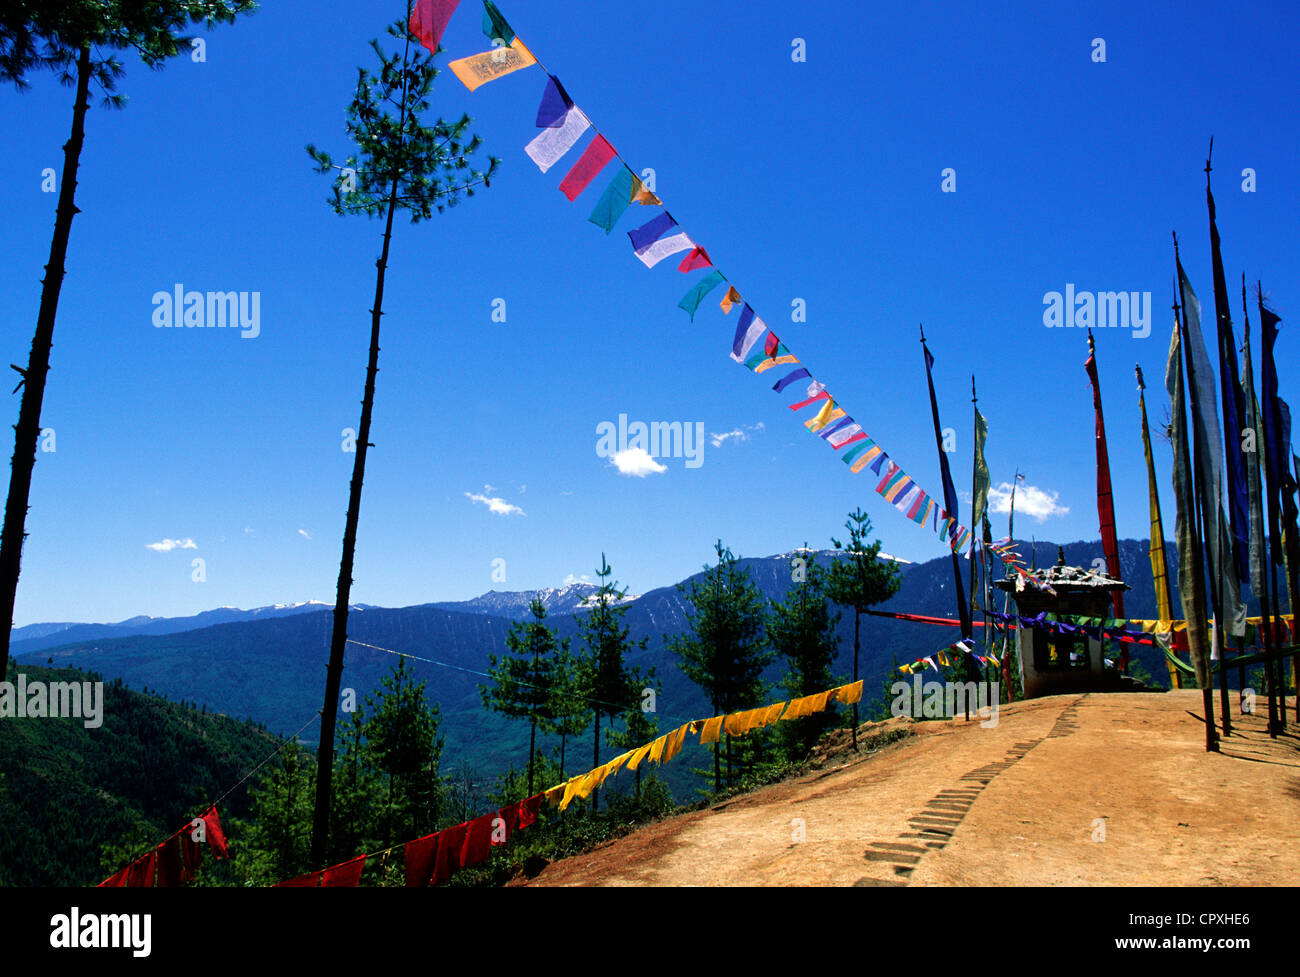 Bhutan Paro District ascent to Taktshang small oratory encircled by prayer flags on road to Tiger Nest one of most - Stock Image